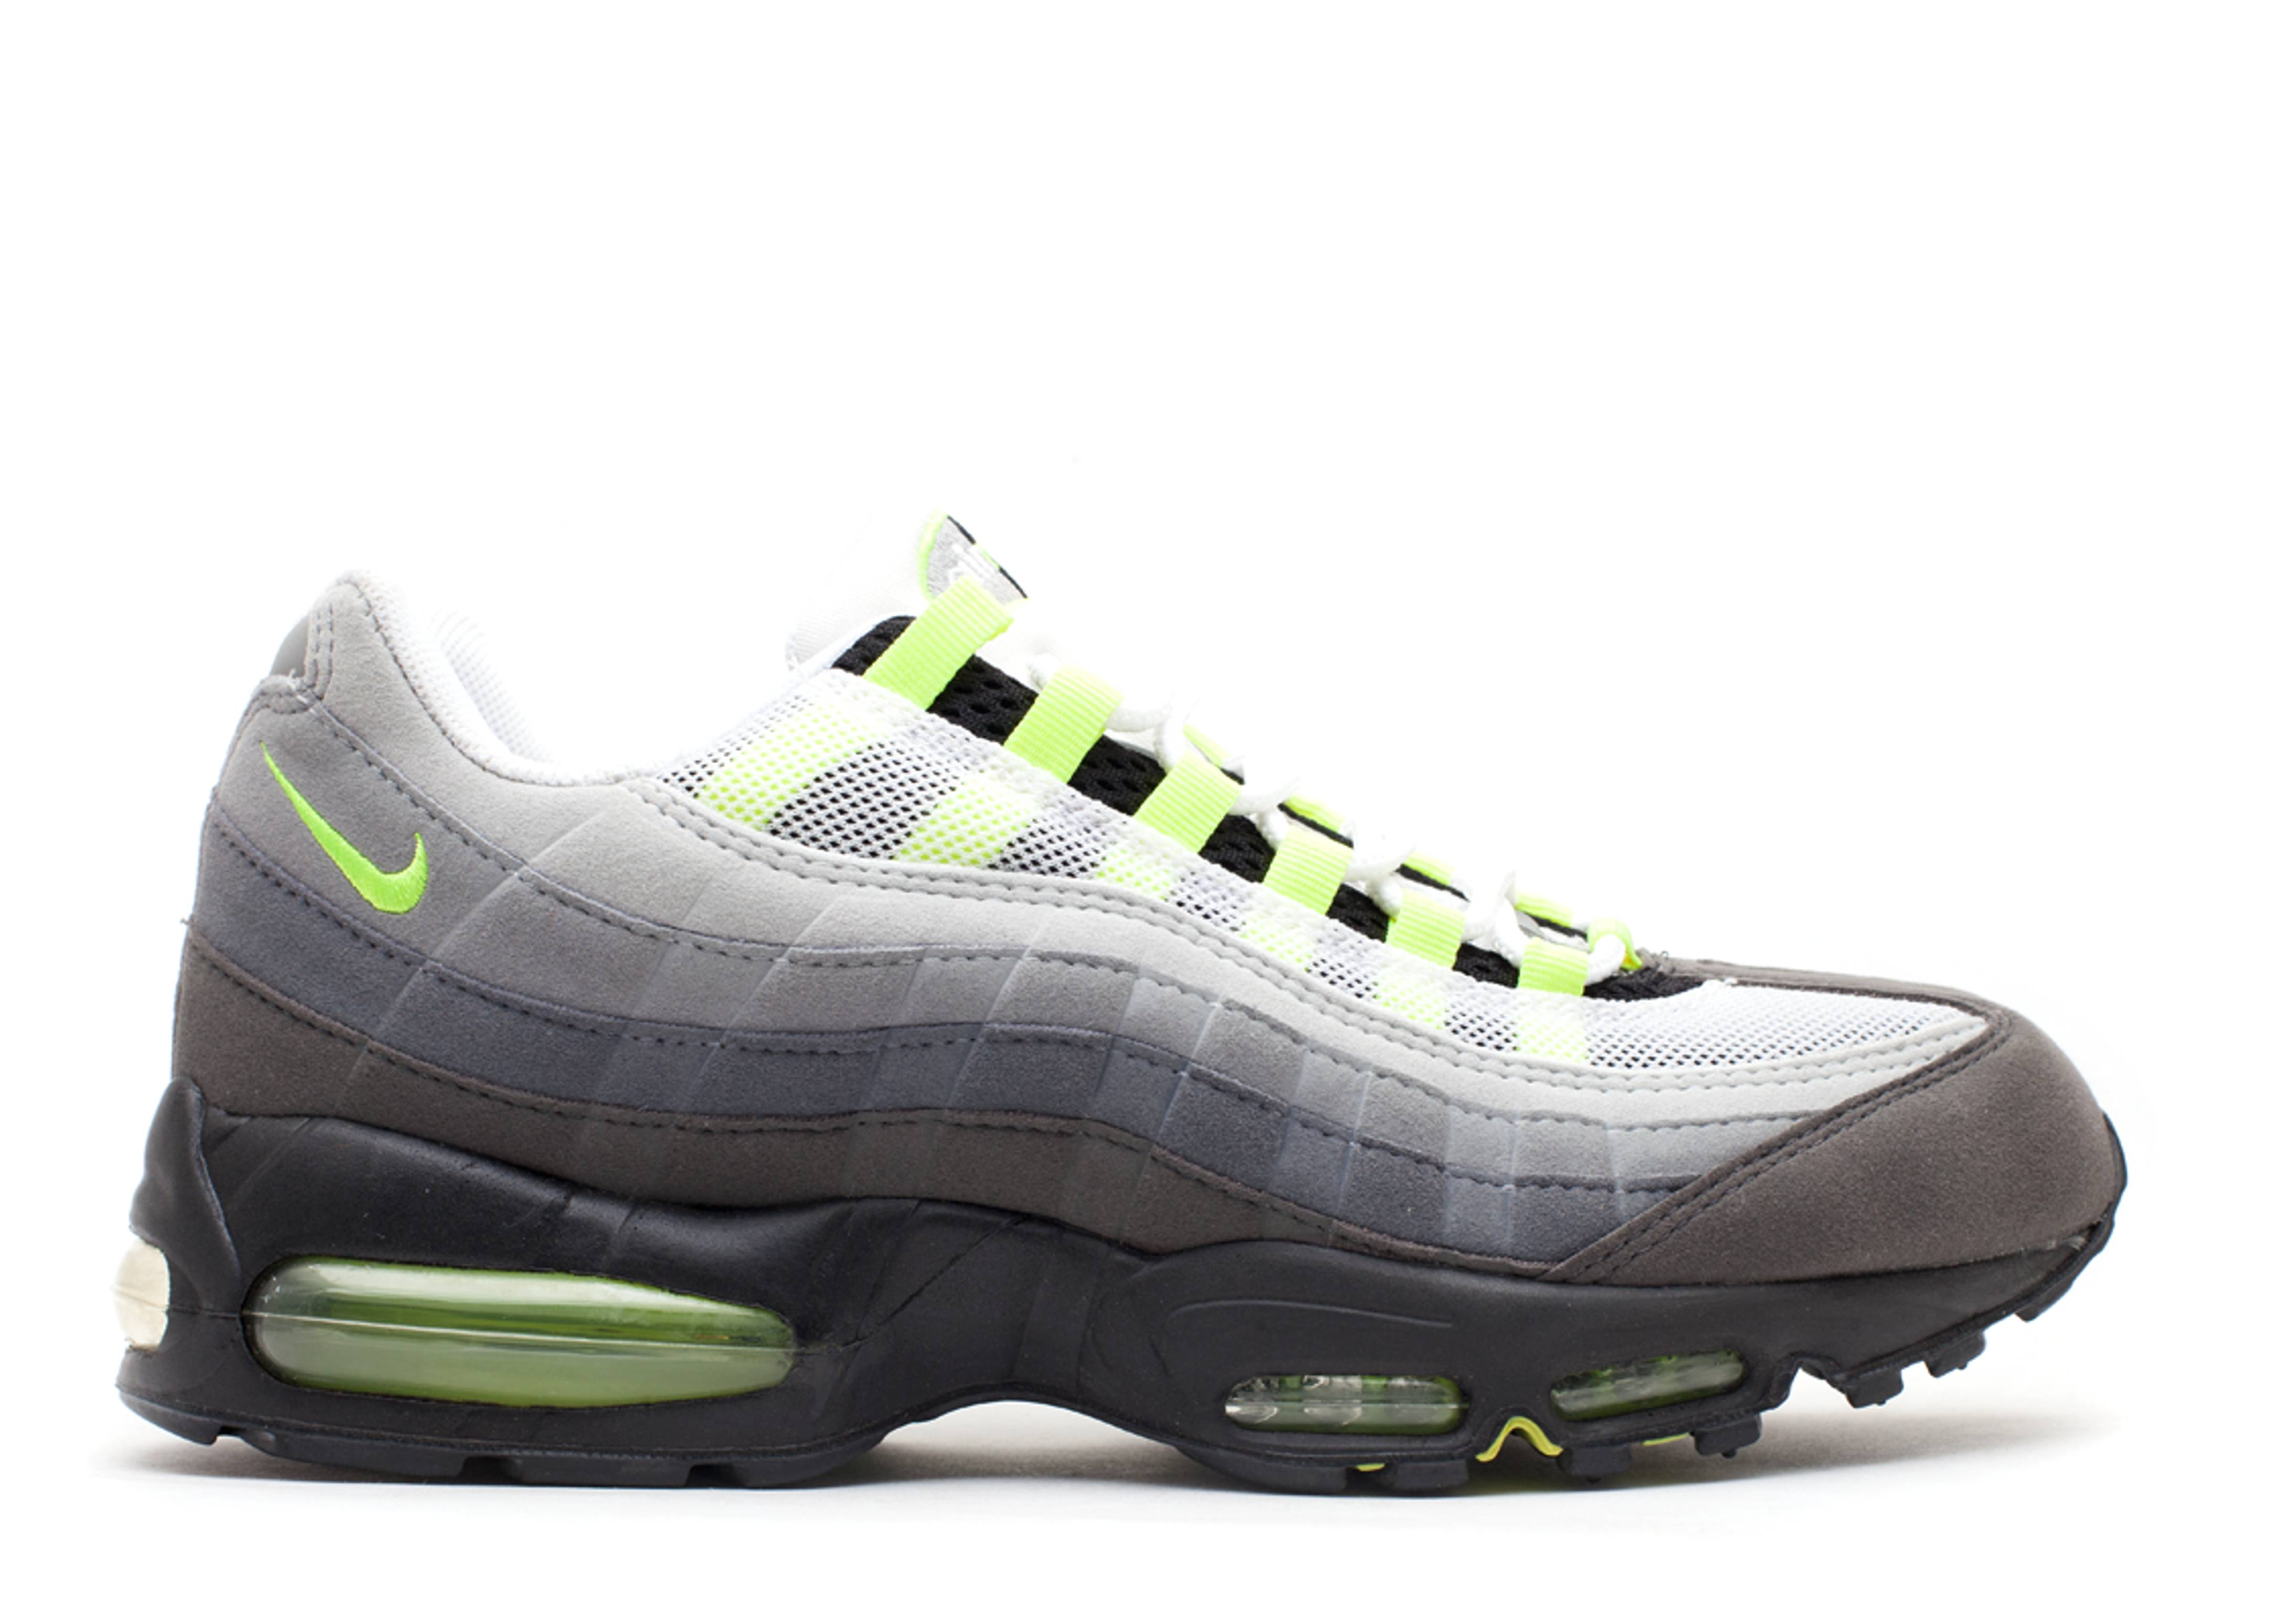 most popular kd shoes nike air max 2003